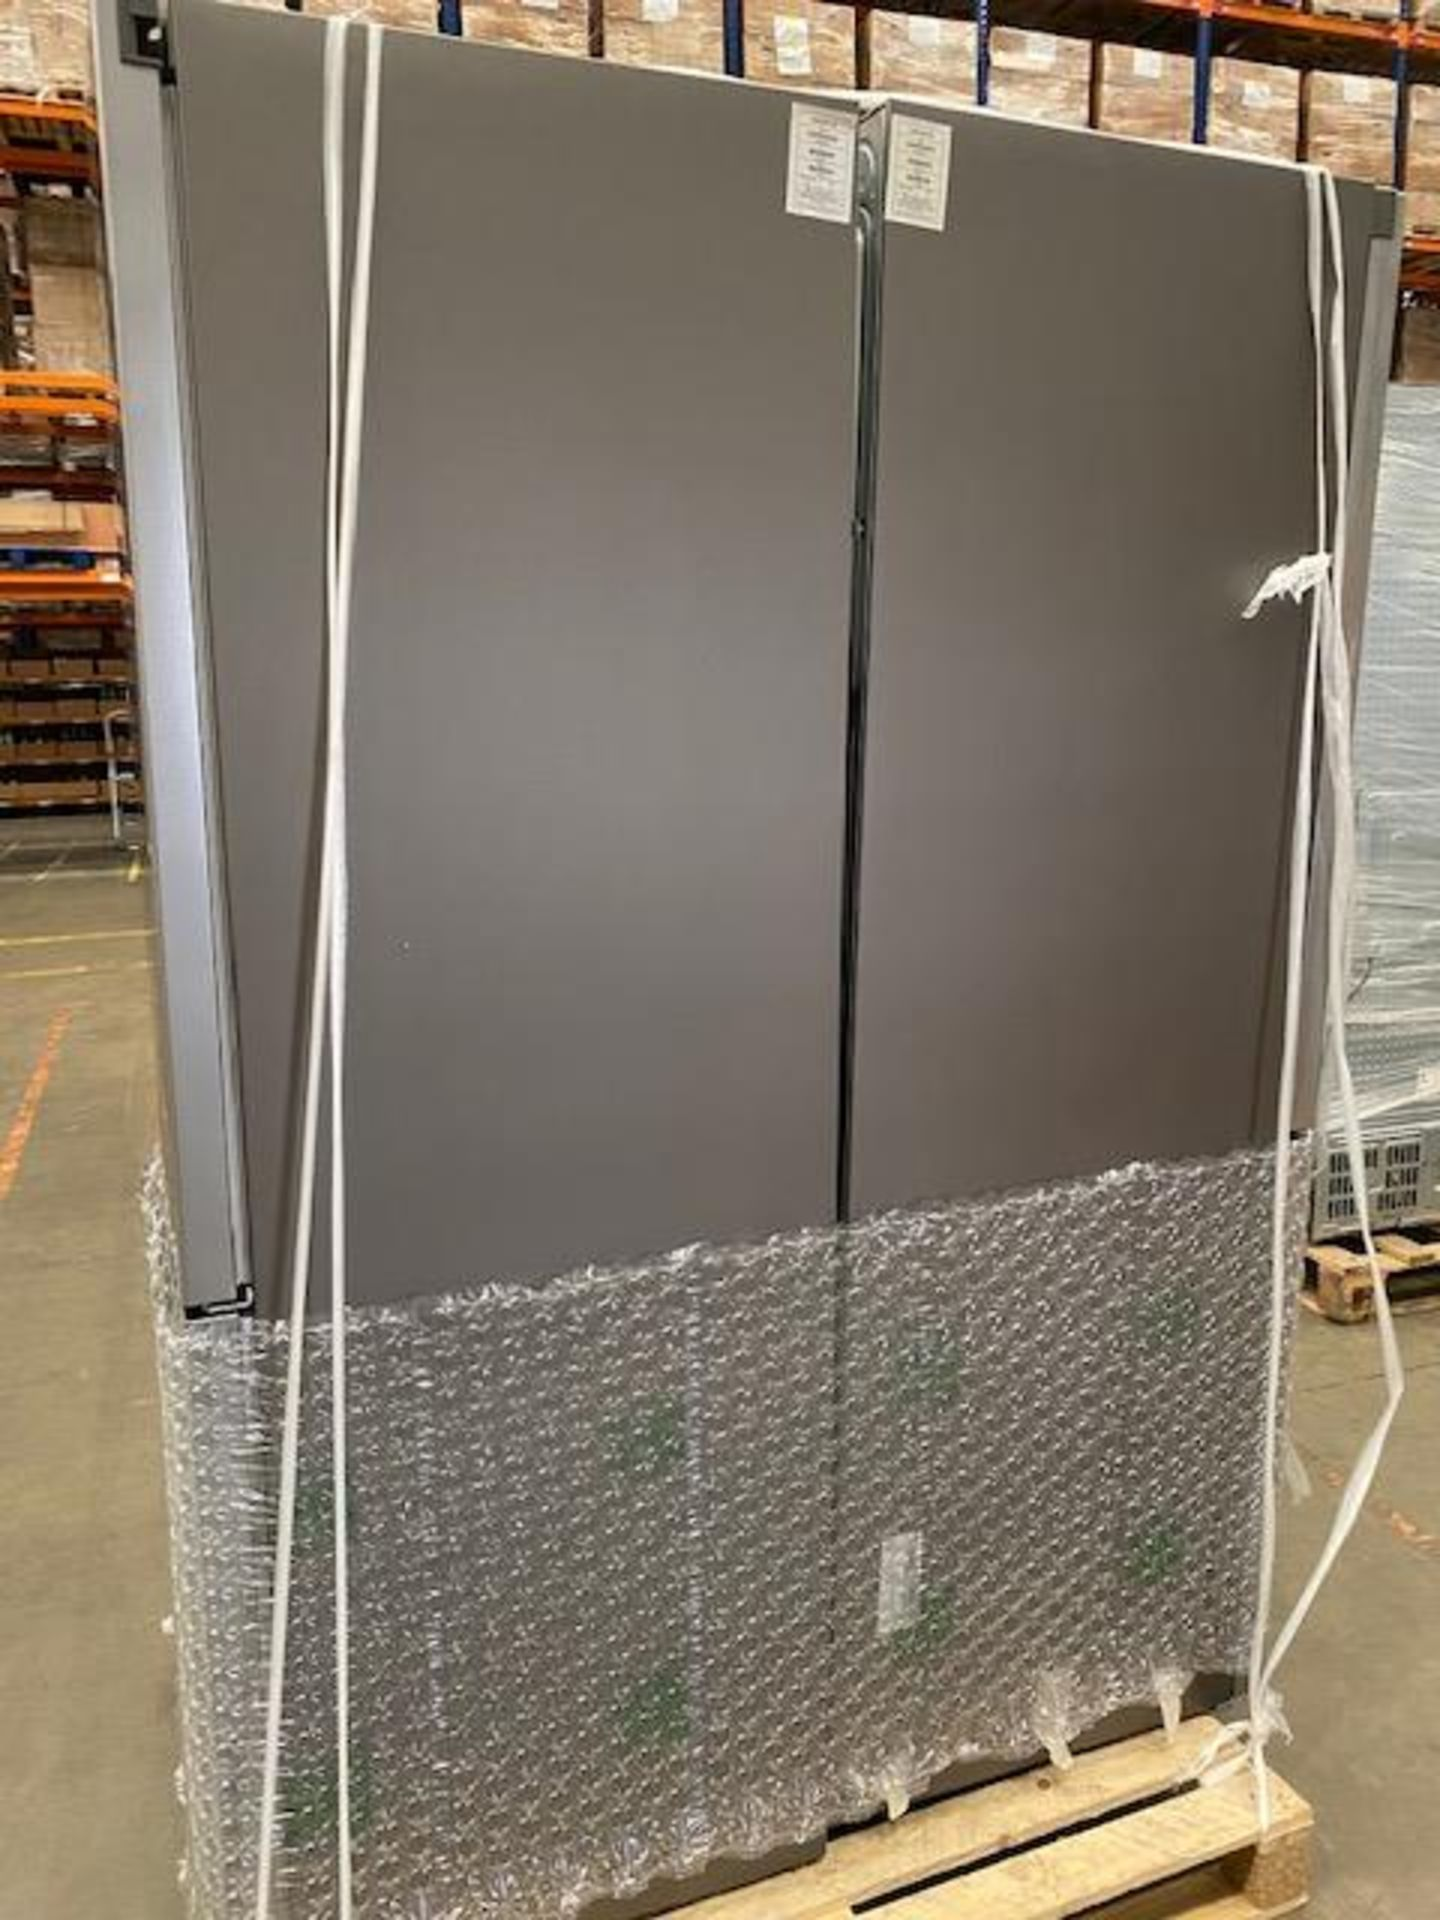 Lot 5 - Pallet of 2 Samsung 60CM Fridge Freezers. Total Latest selling price £898*